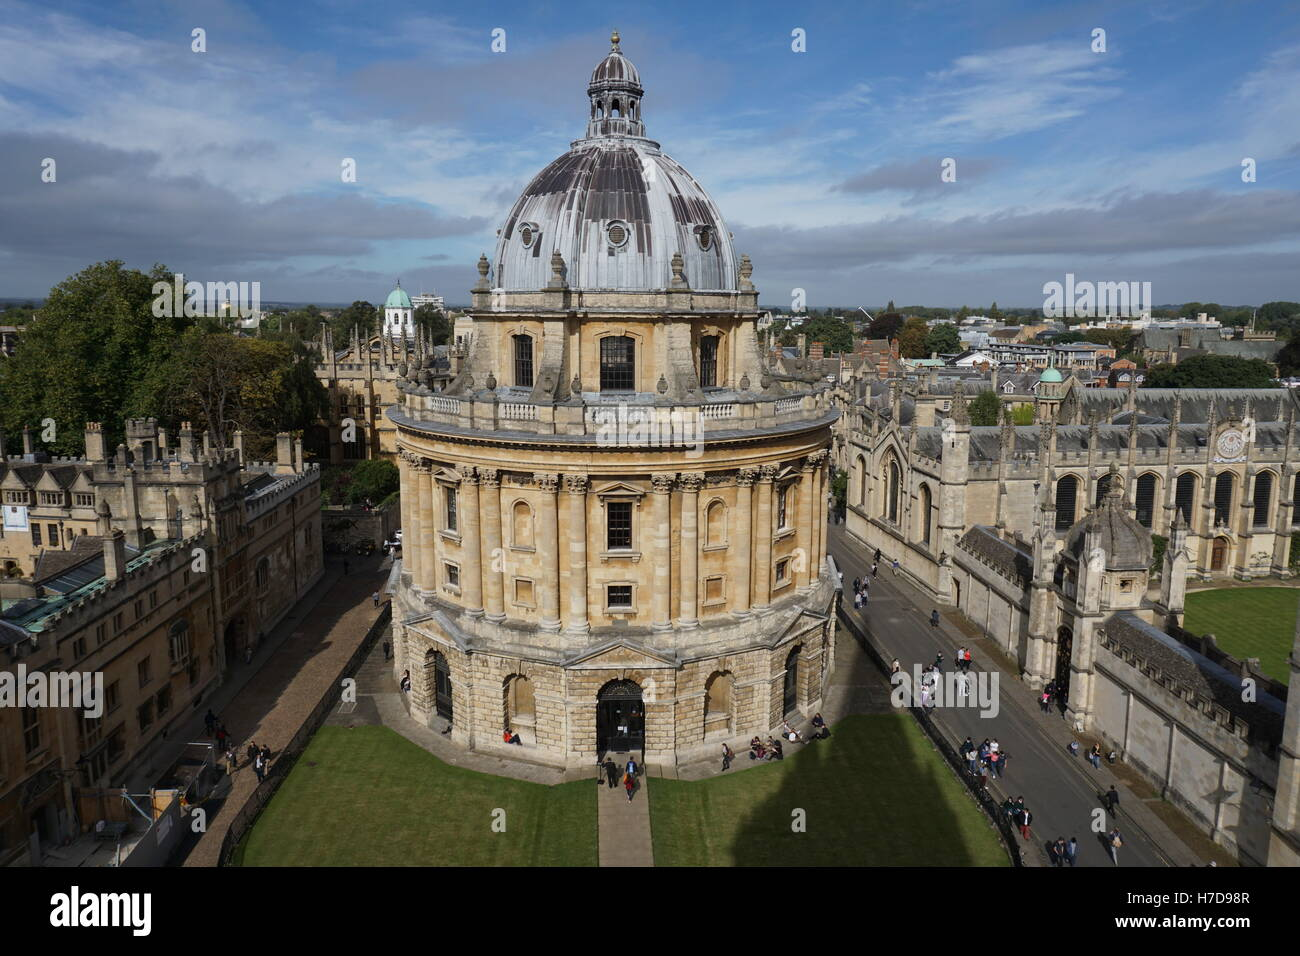 Oxford University Radcliffe Camera library building - Stock Image